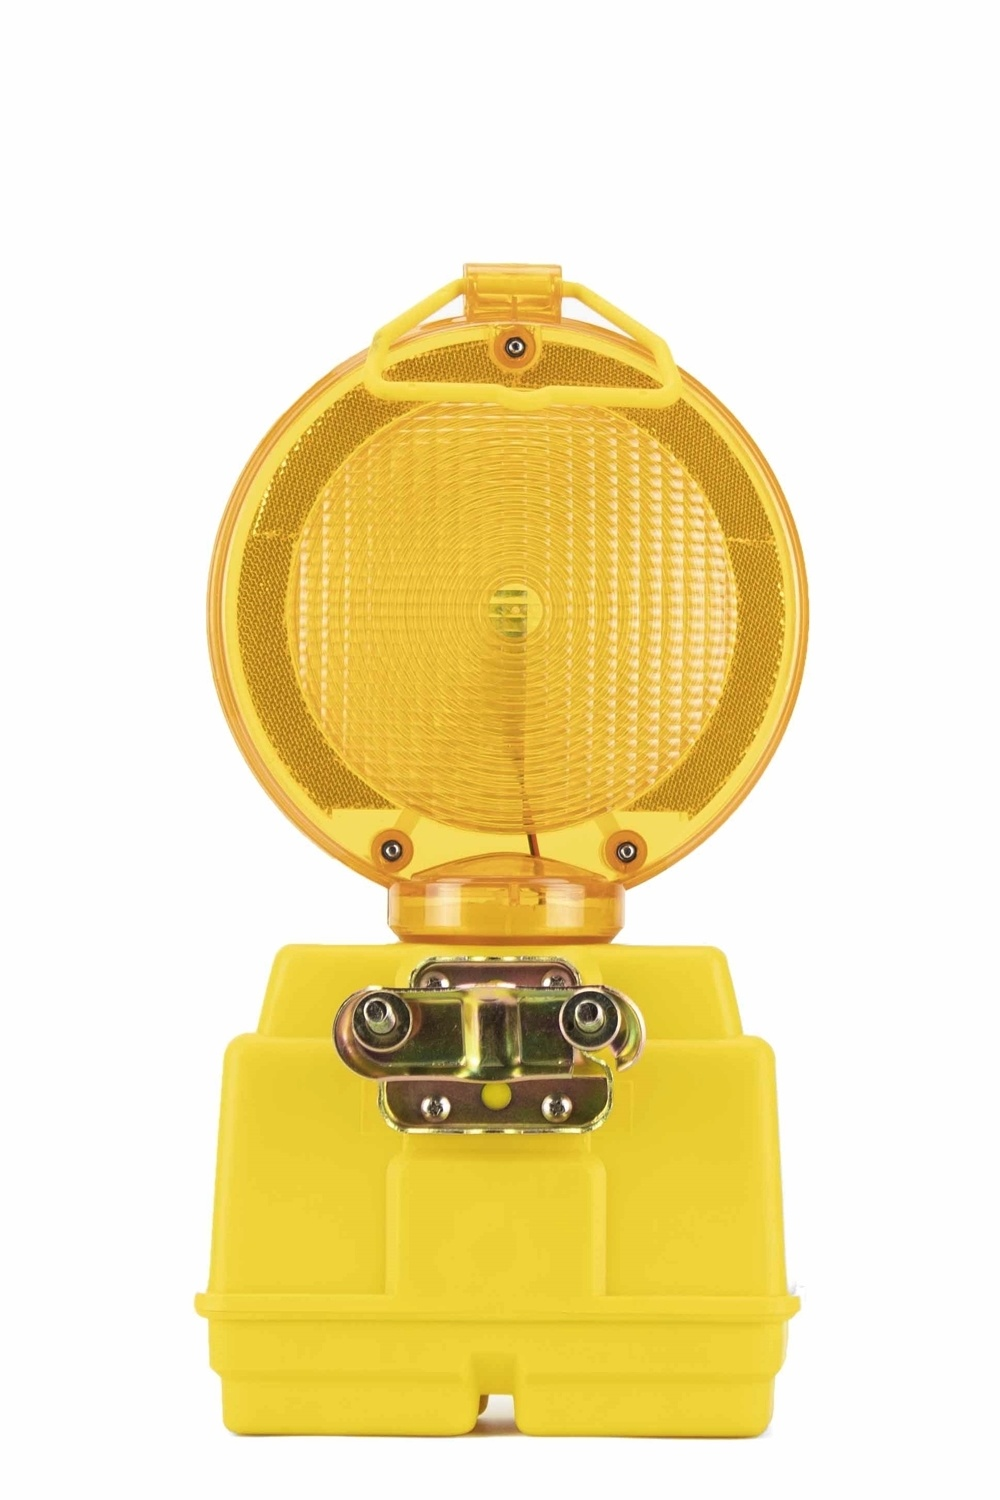 STAR Warning lamp STAR 2000 - yellow